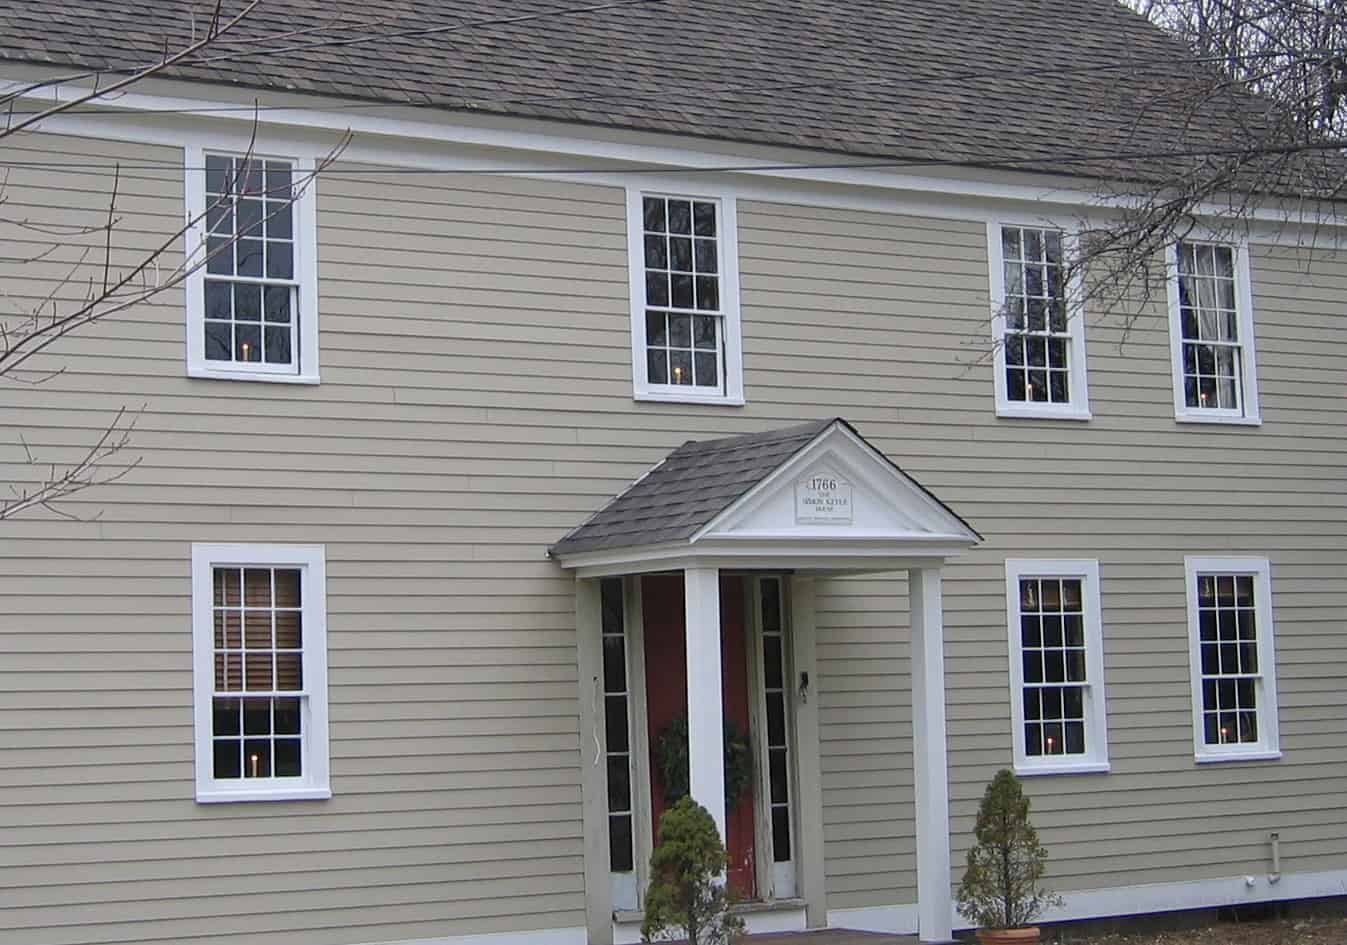 buy replacement windows cost dont buy replacement windows for your old house